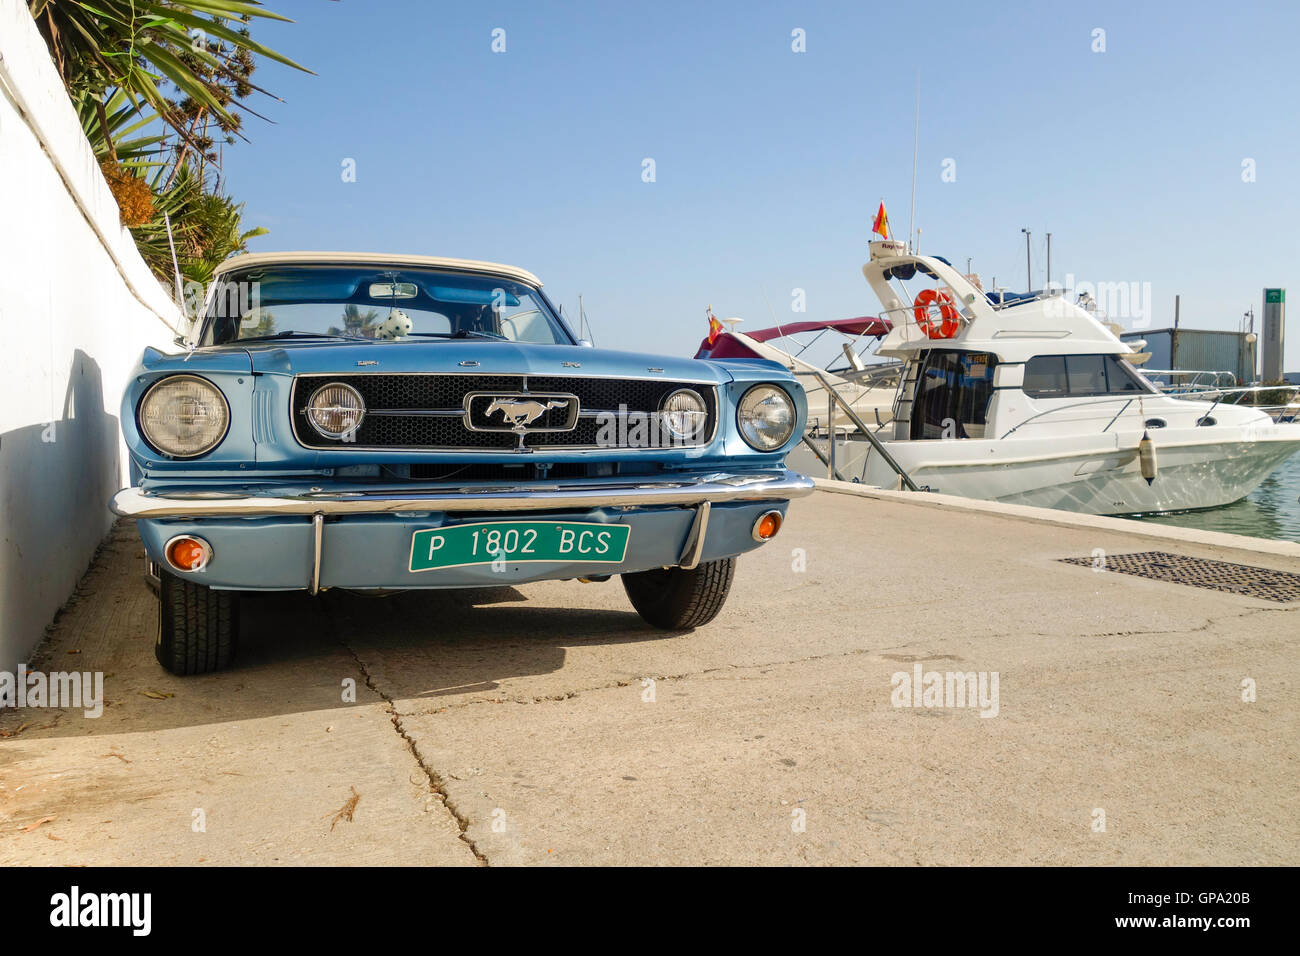 Ford Mustang Convertible 200, parked in luxury port, Cabopino, Spain. - Stock Image